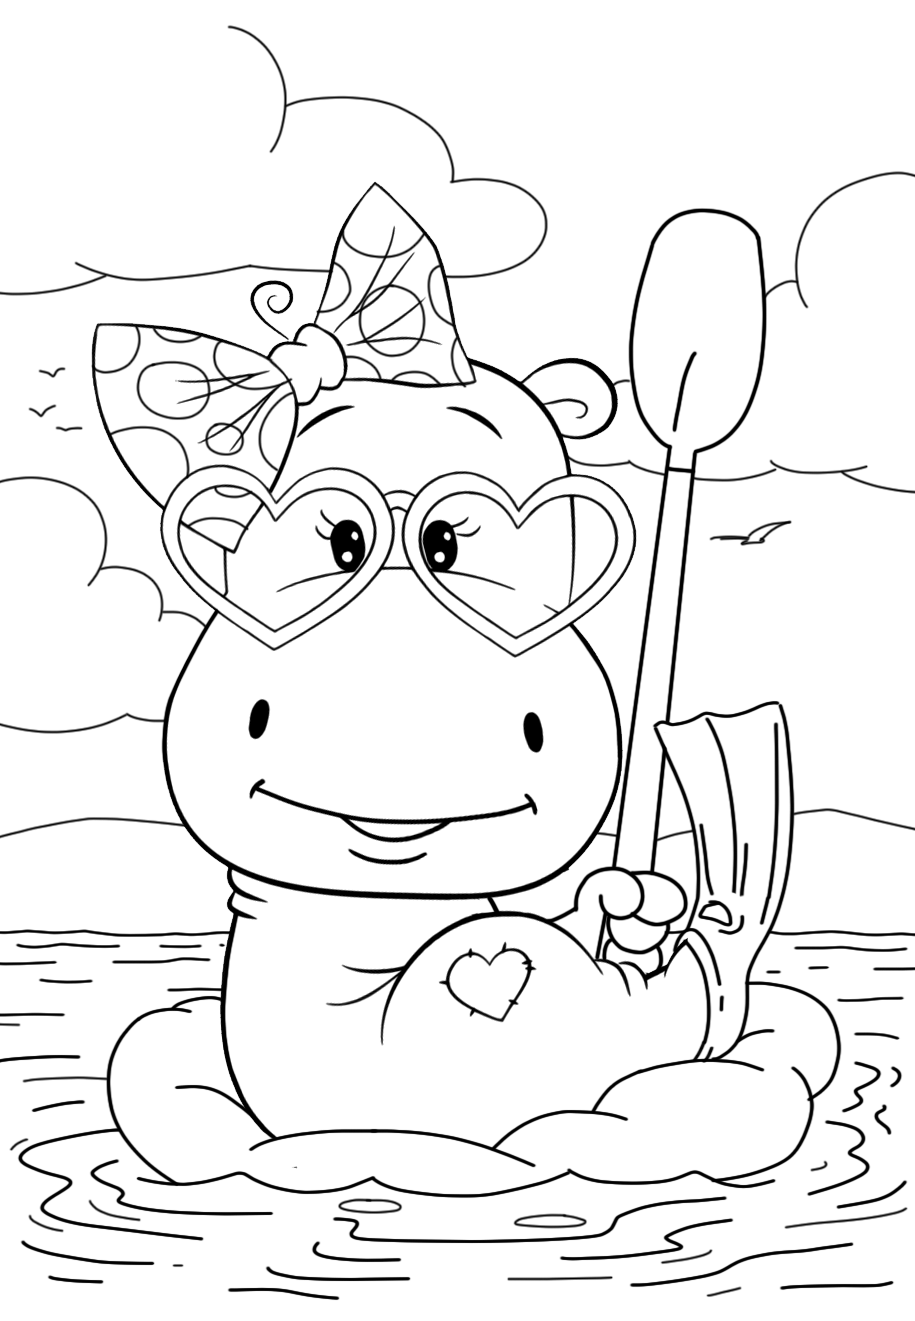 coloring page hippo hippo coloring pages page coloring hippo